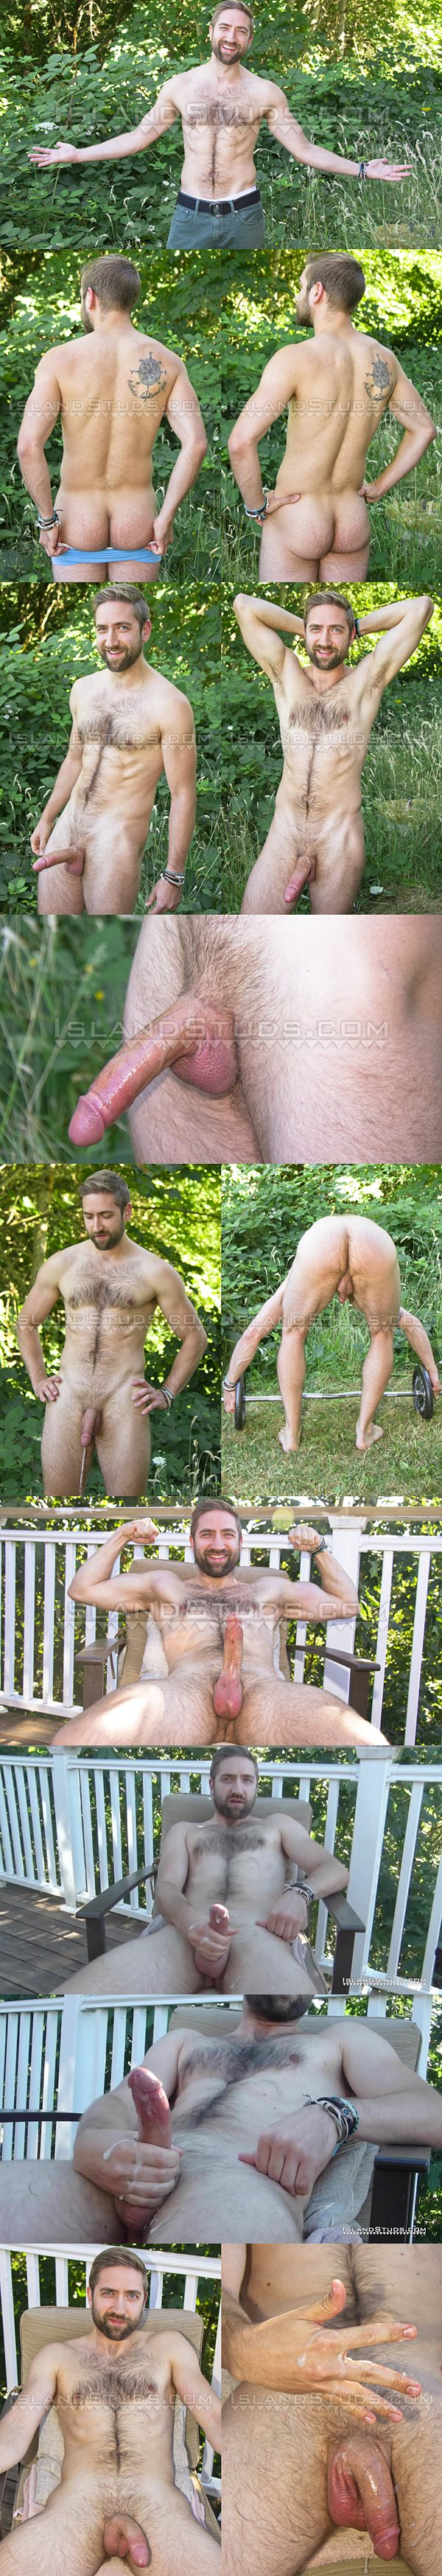 Big-dicked hairy graduate student Mark shows off his naked muscle body and pisses before he milks a sticky load out of his hard pole at Islandstuds